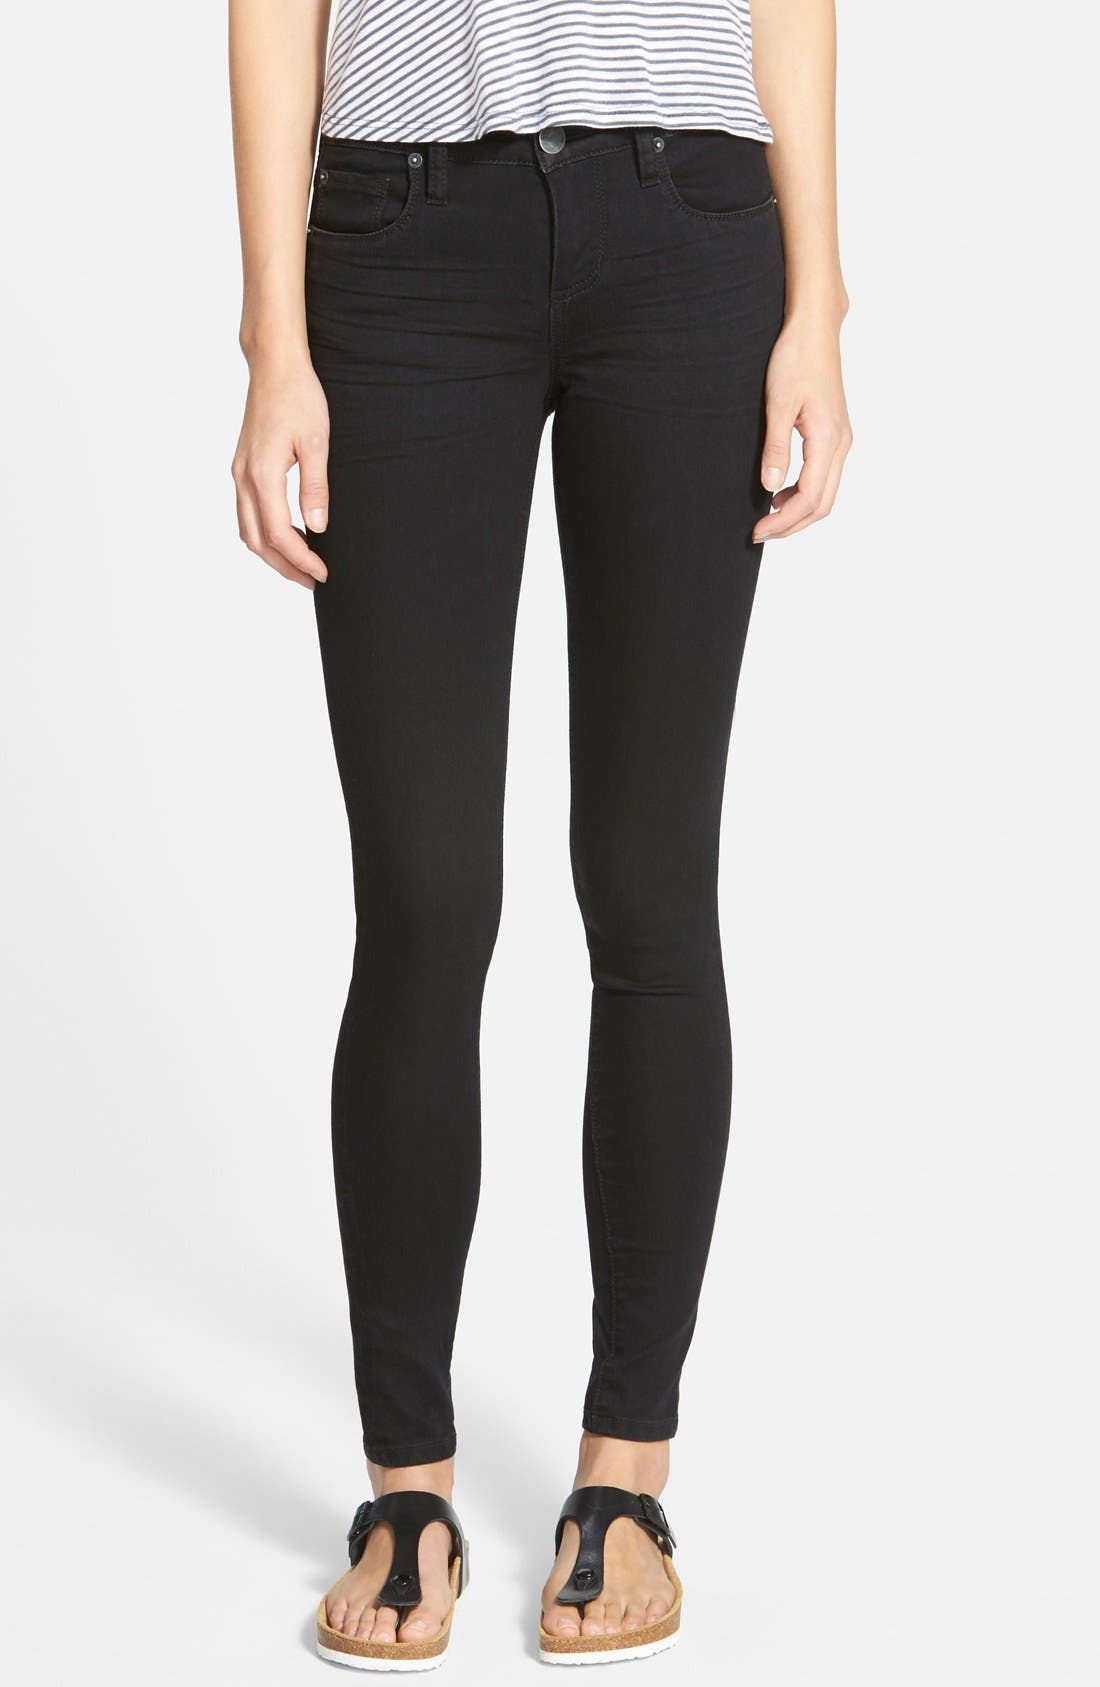 'Piper' Skinny Jeans,                             Main thumbnail 1, color,                             001